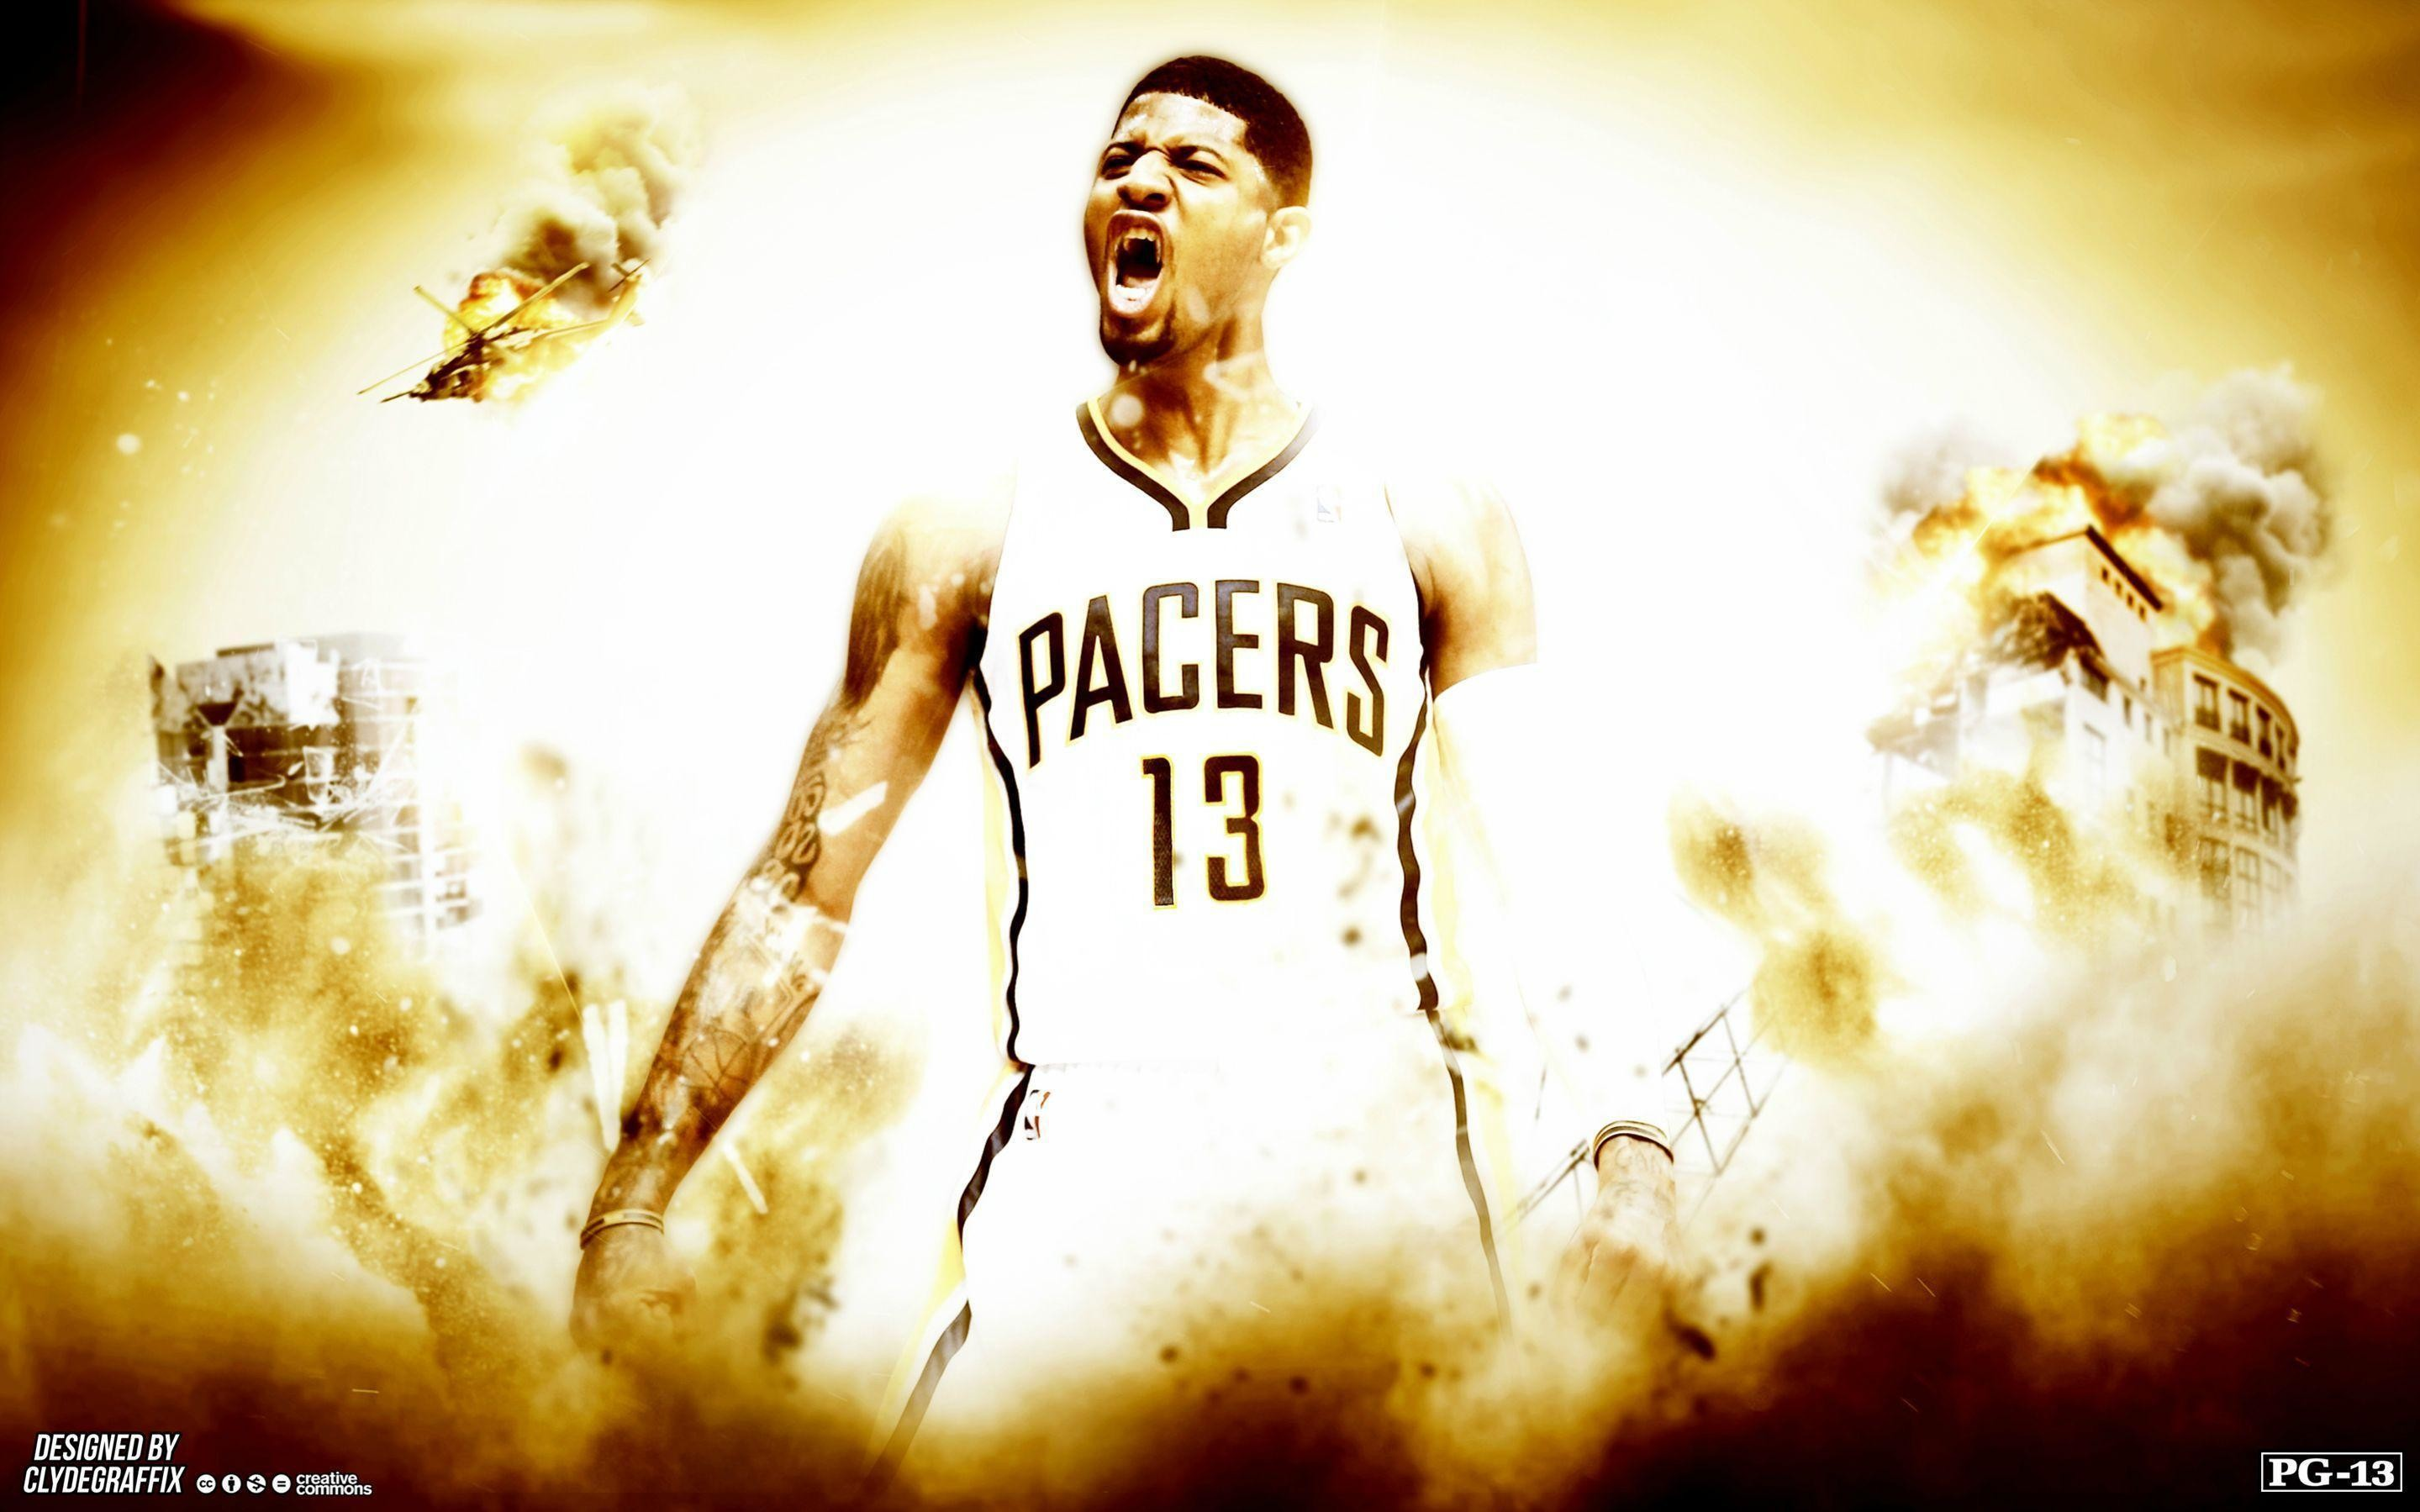 Made a Paul George wallpaper I thought you guys might like! : pacers